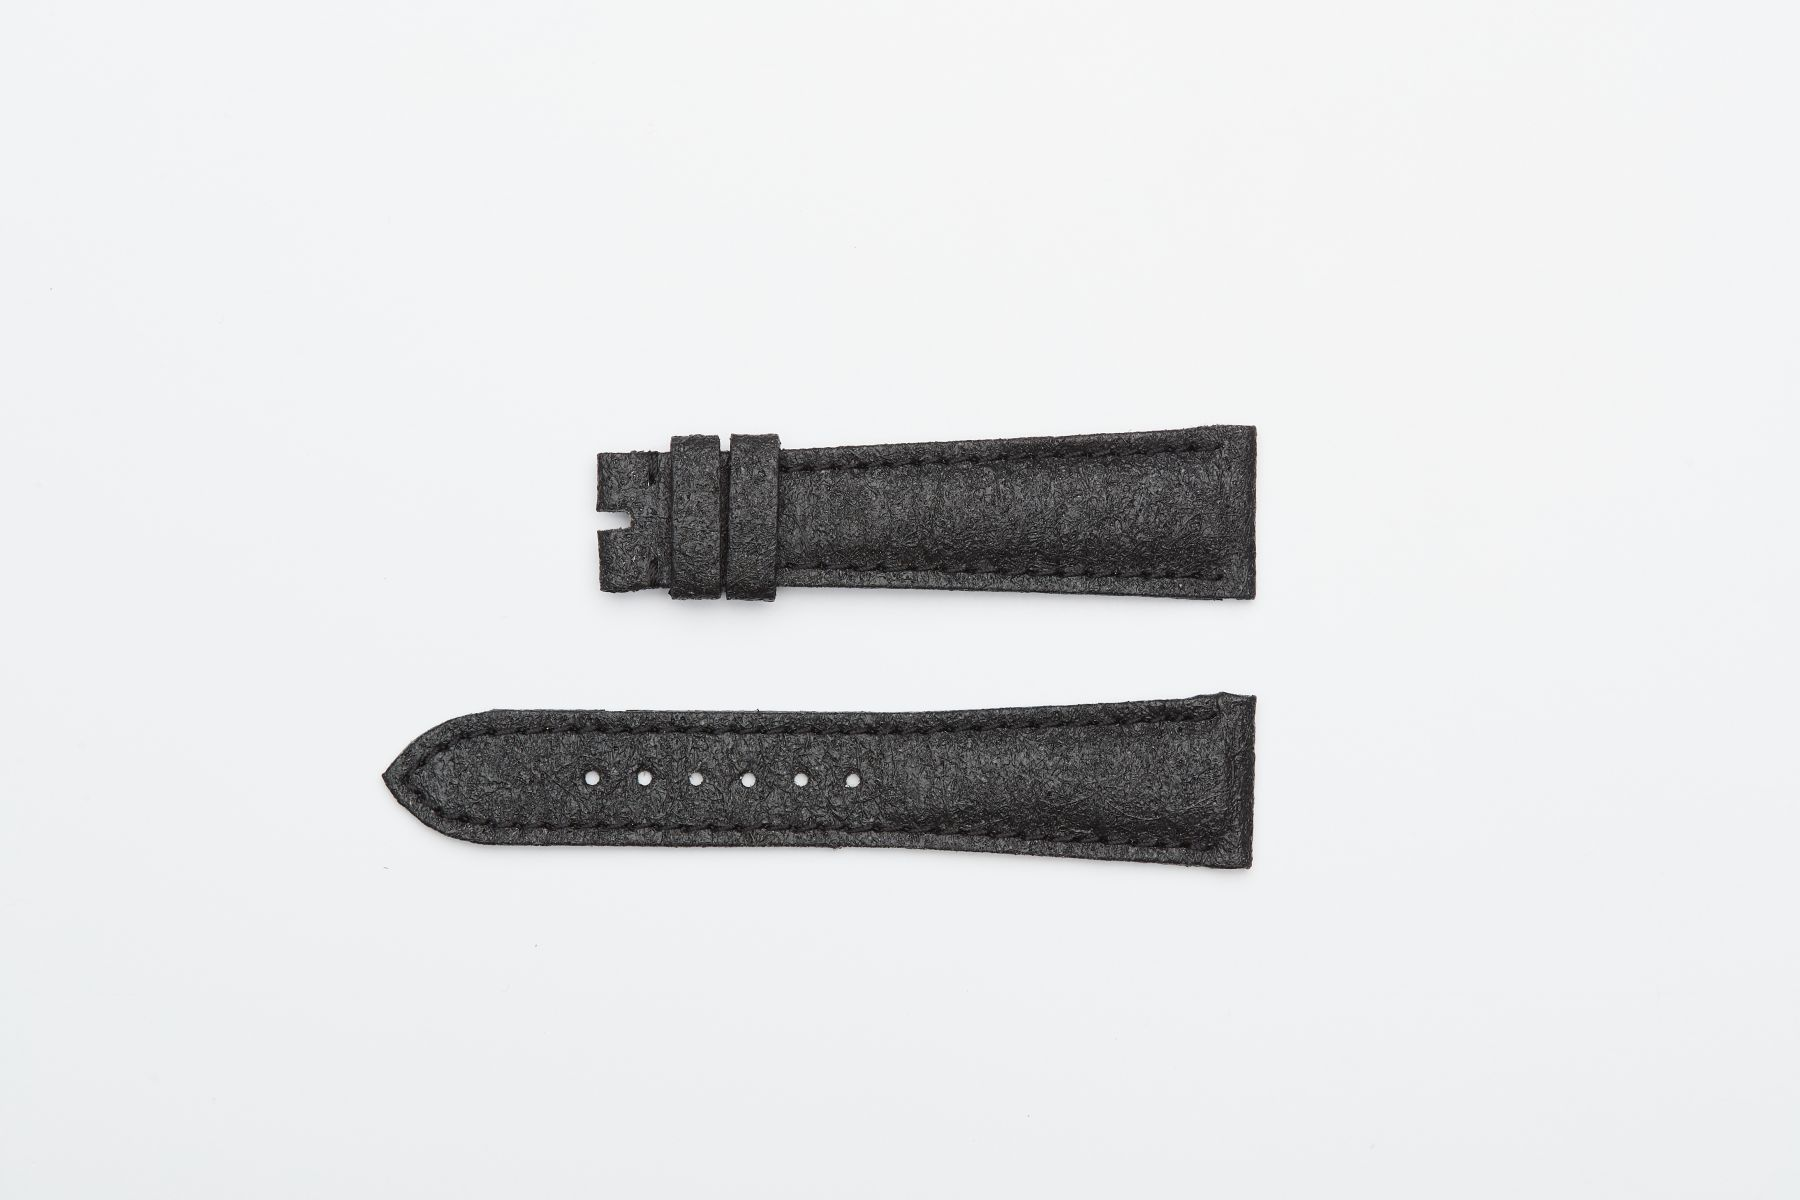 Onyx Black Pinatex Replacement Strap for different style timepieces. Vegan